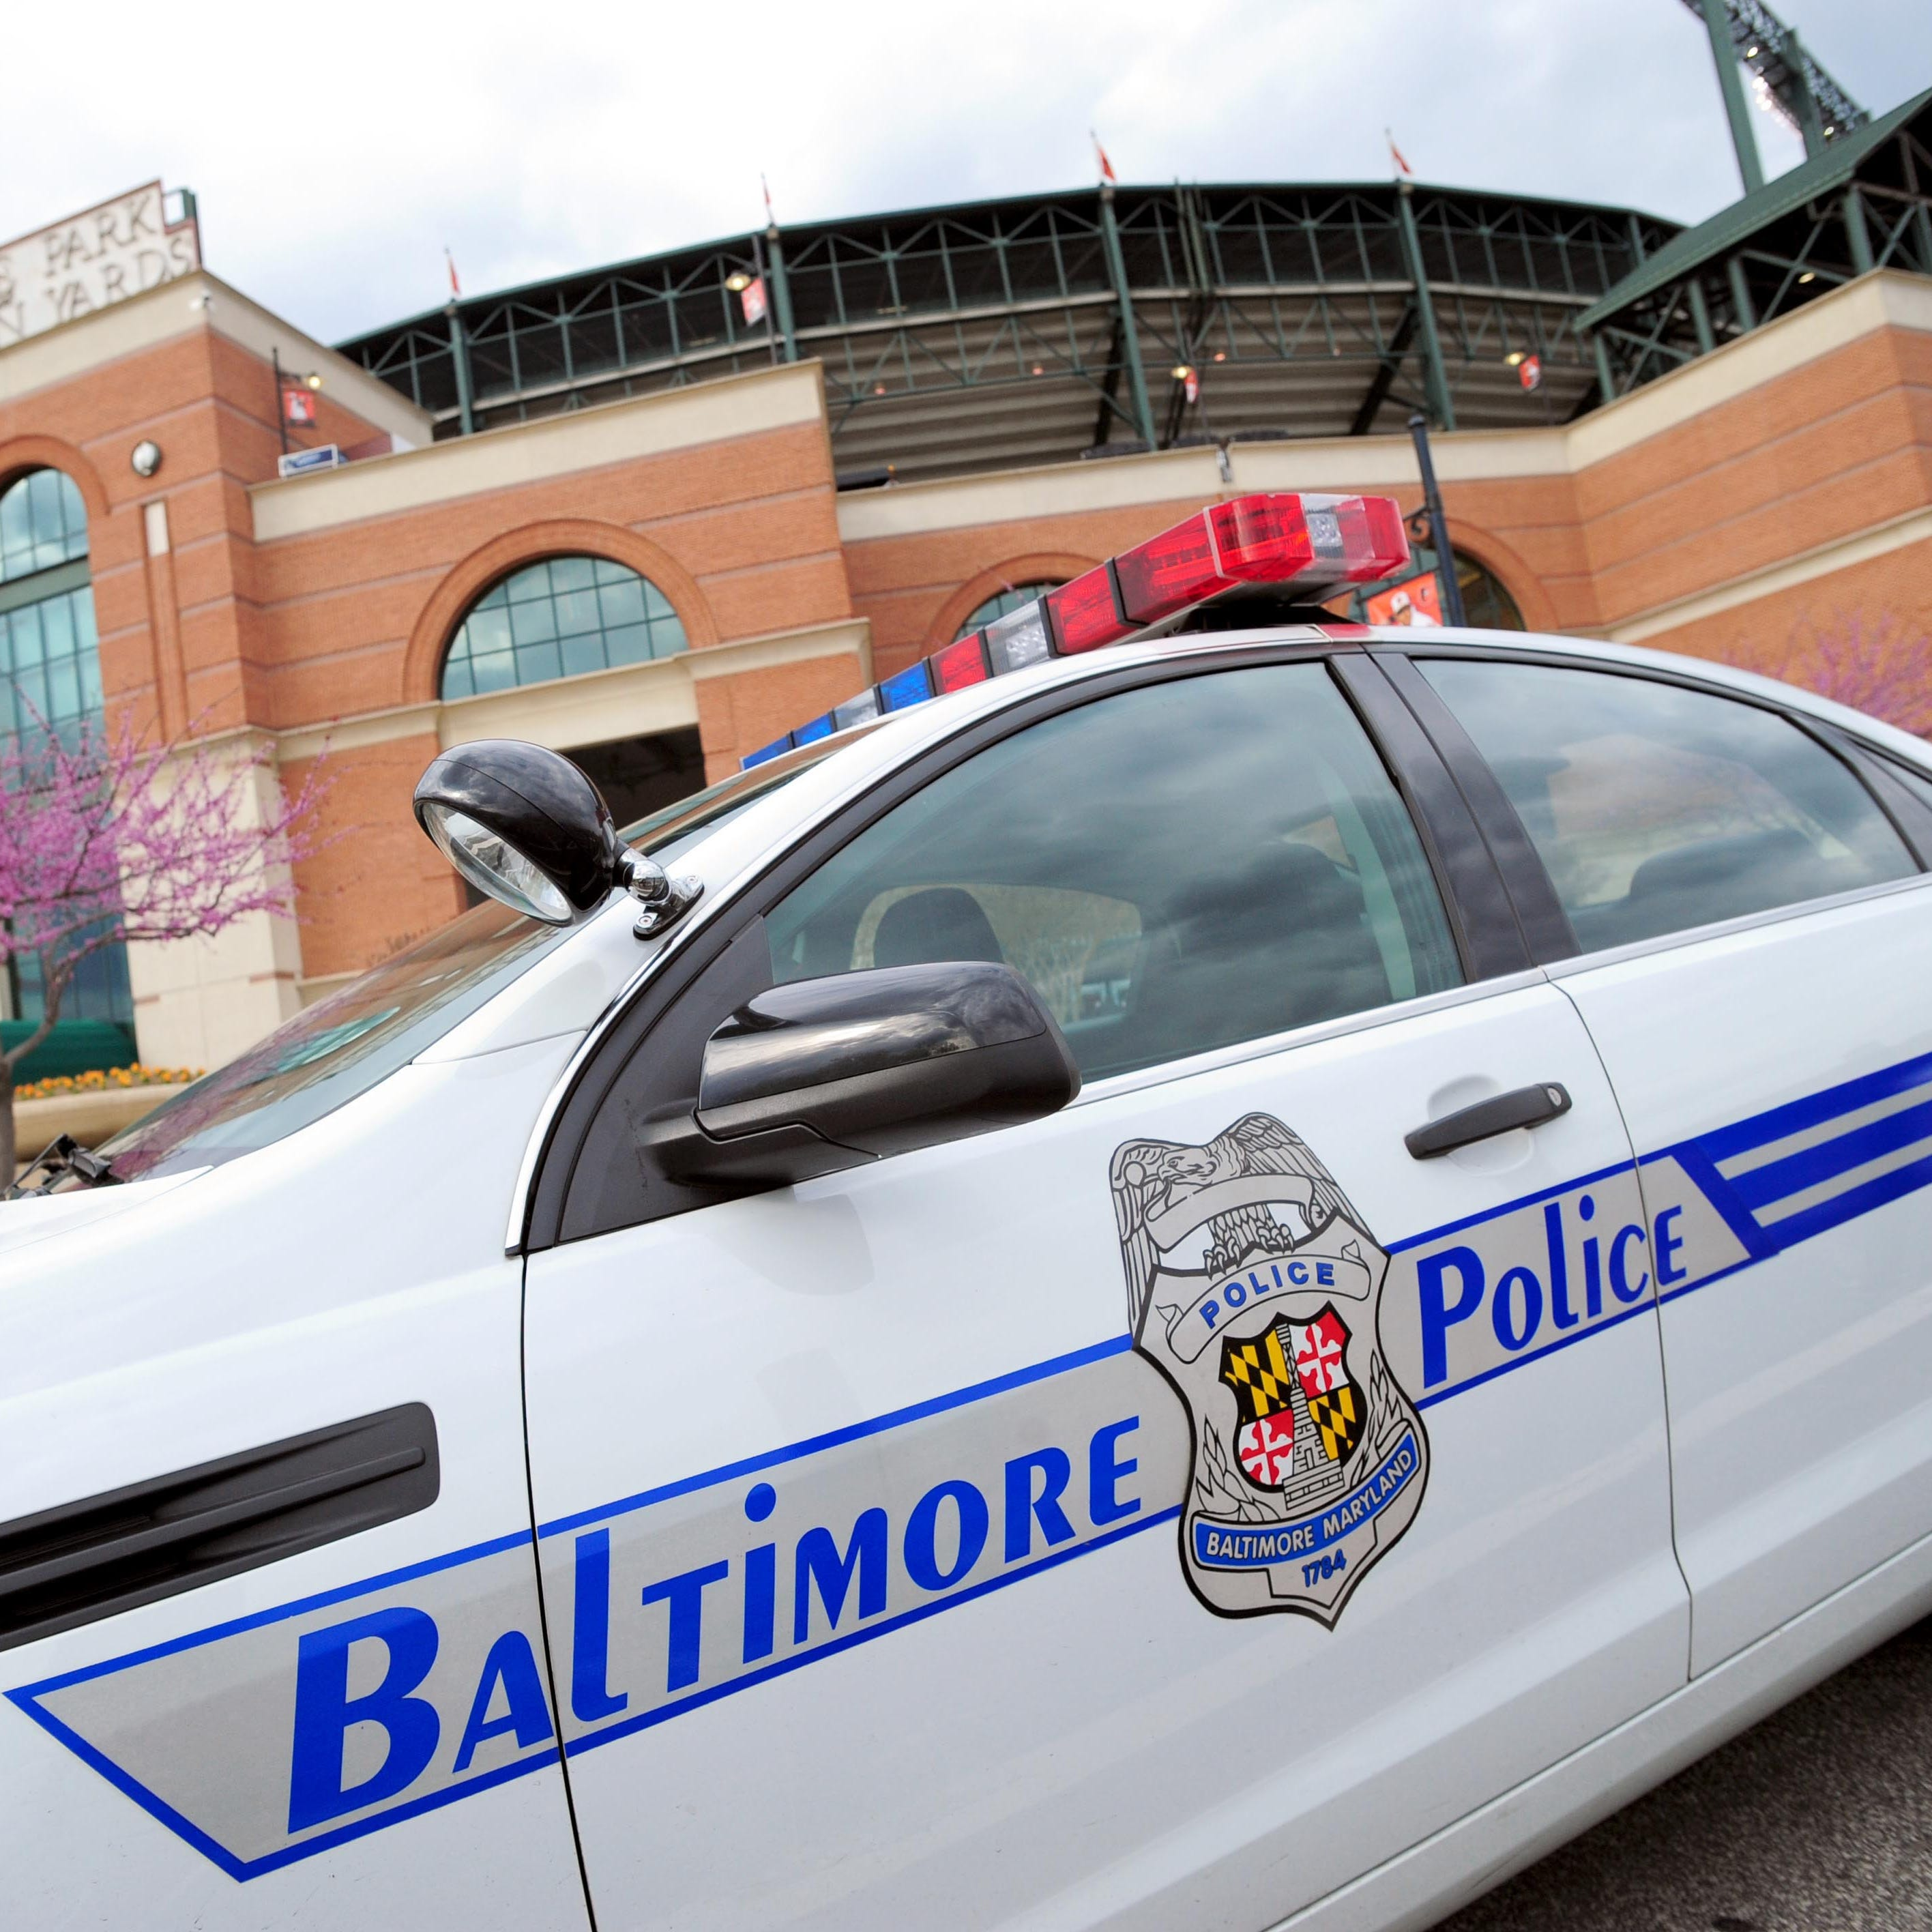 Baltimore police officer who beat man in viral video resigns